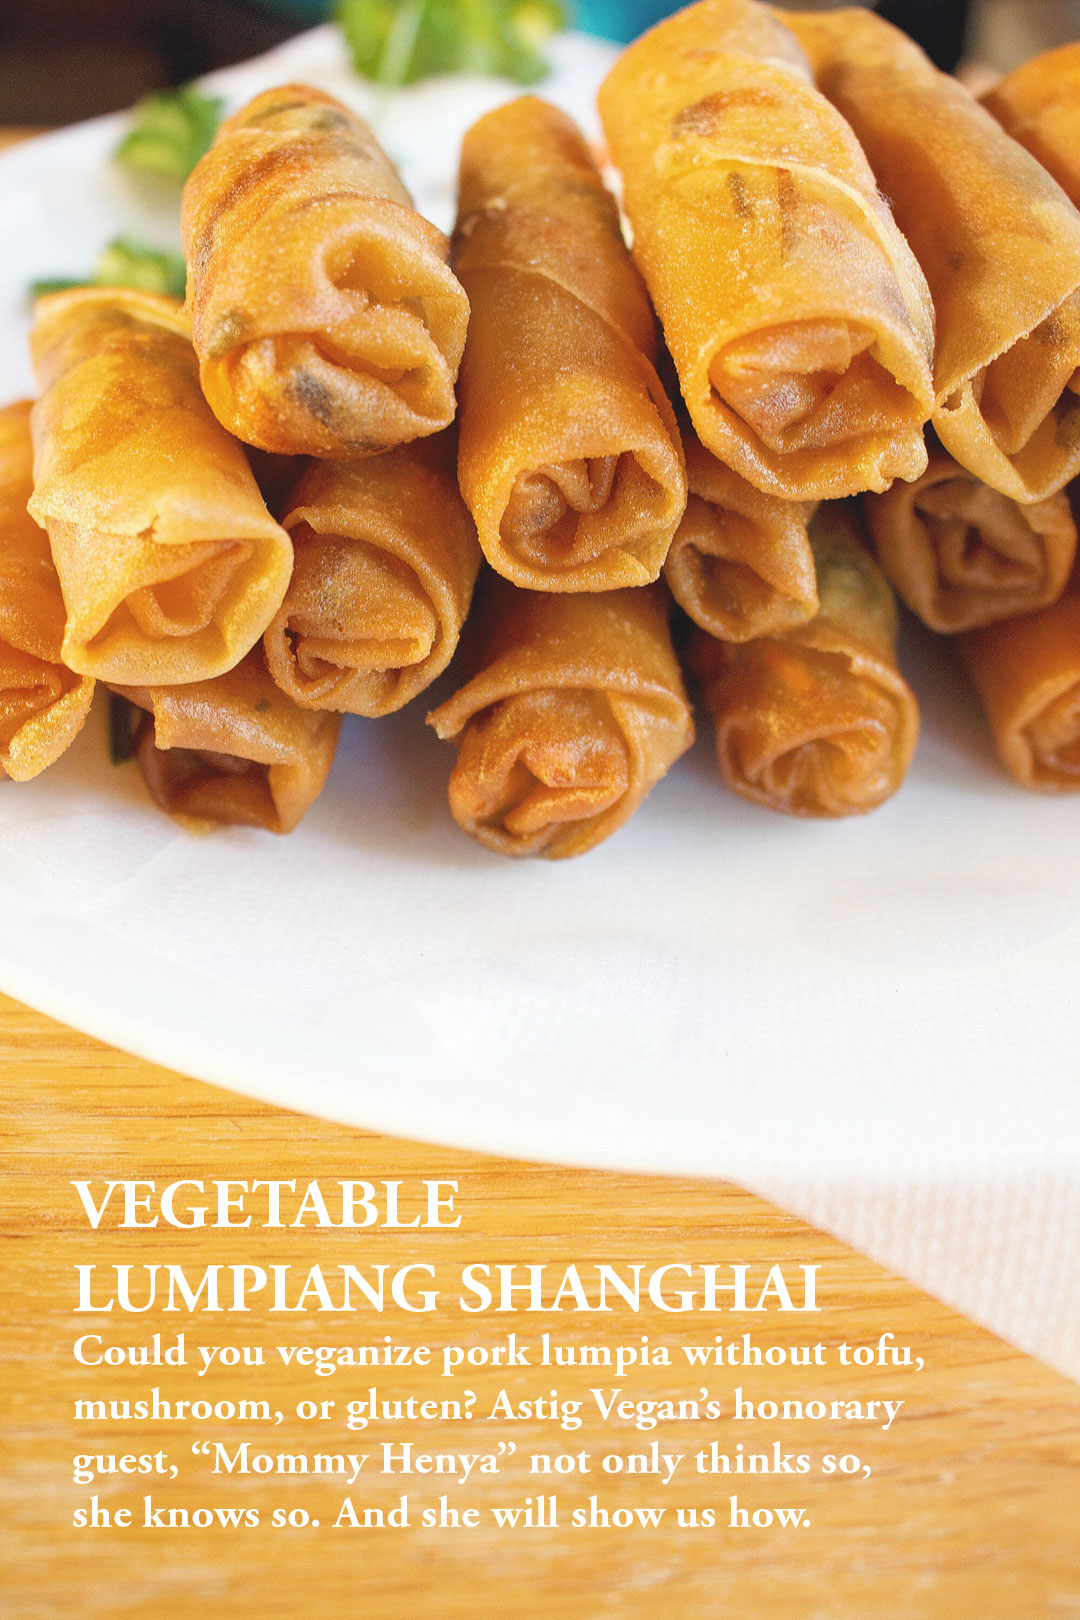 astig-vegetable-lumpiang-shanghai